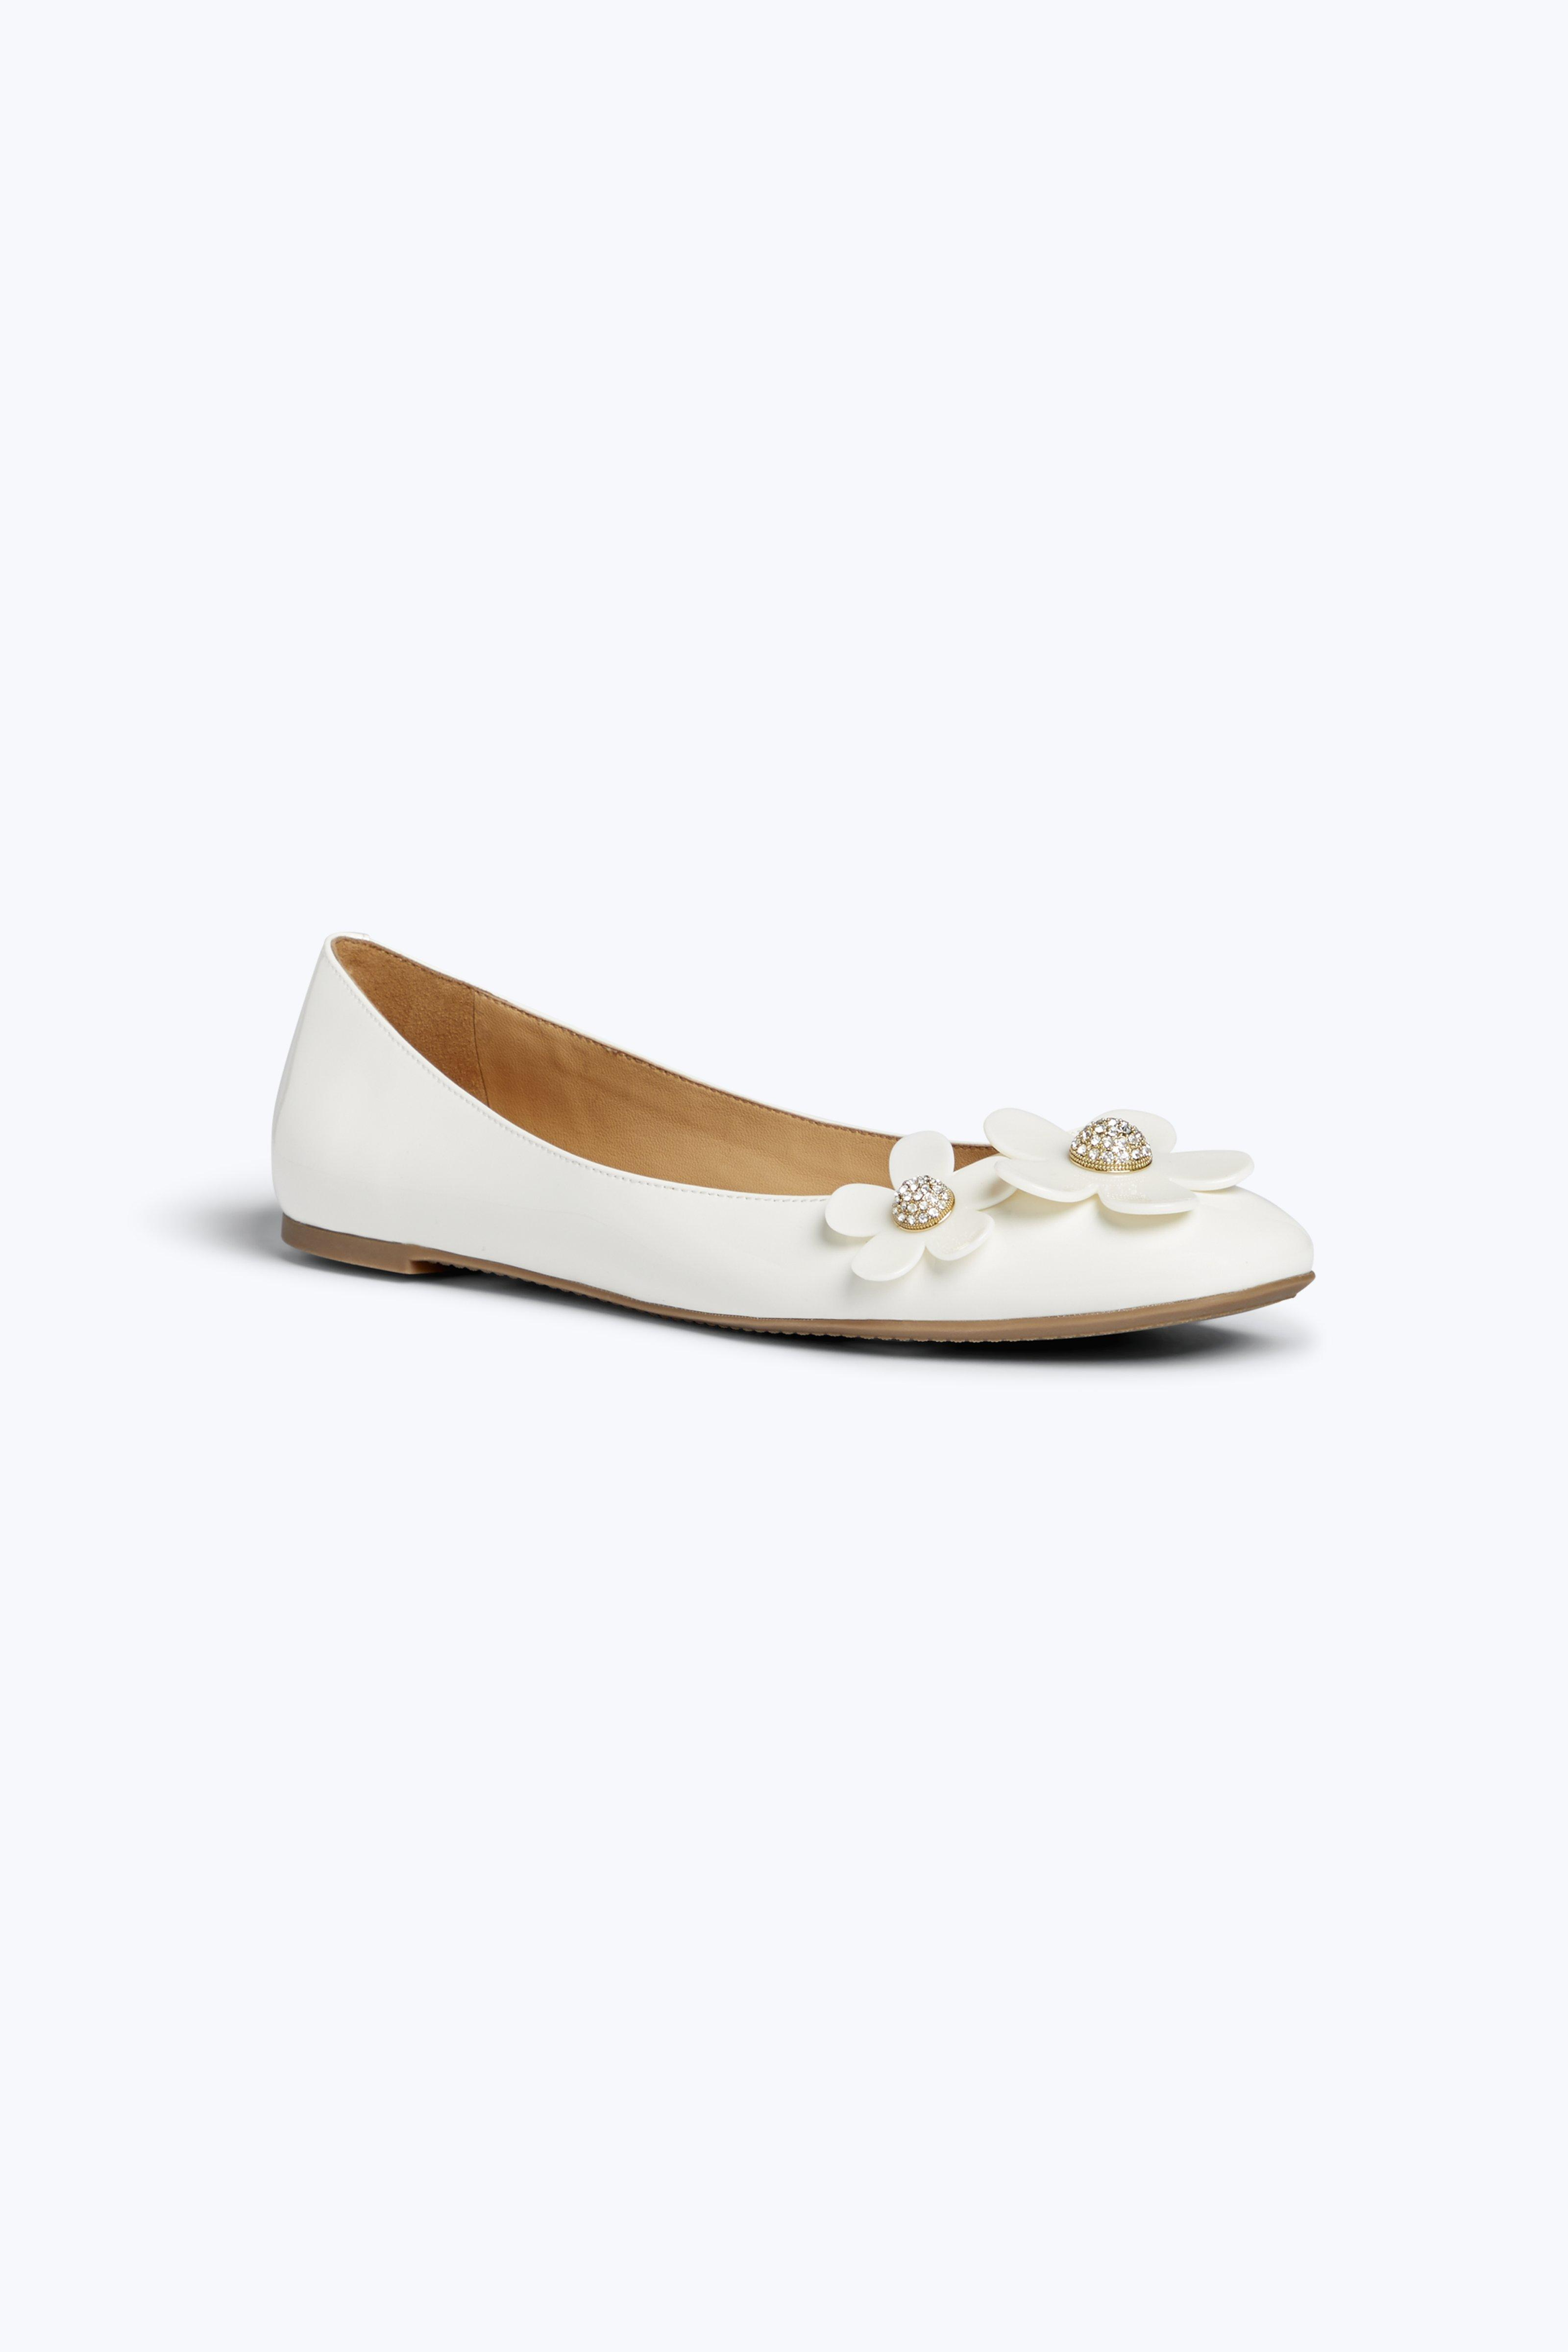 Daisy Patent Leather Ballet Flats in White